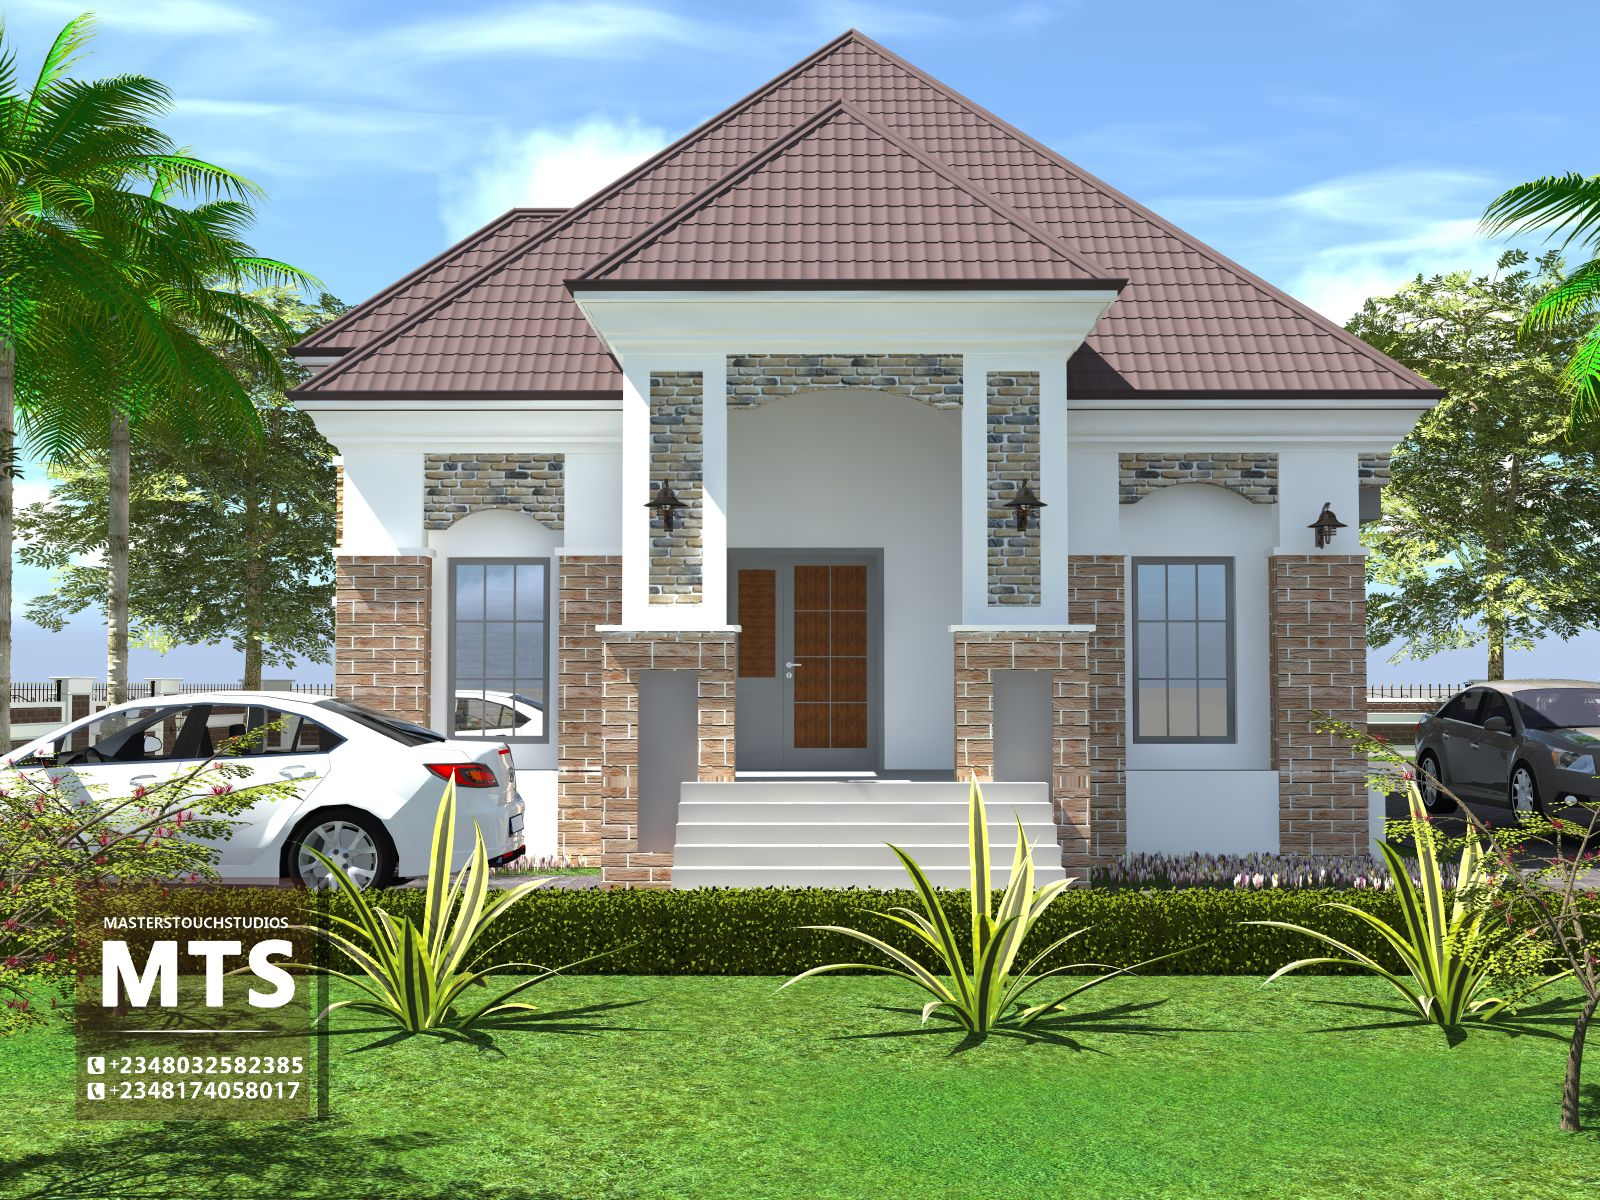 4 Bedroom Bungalow Rf 4010 Modern Bungalow House House Styles House Architecture Design